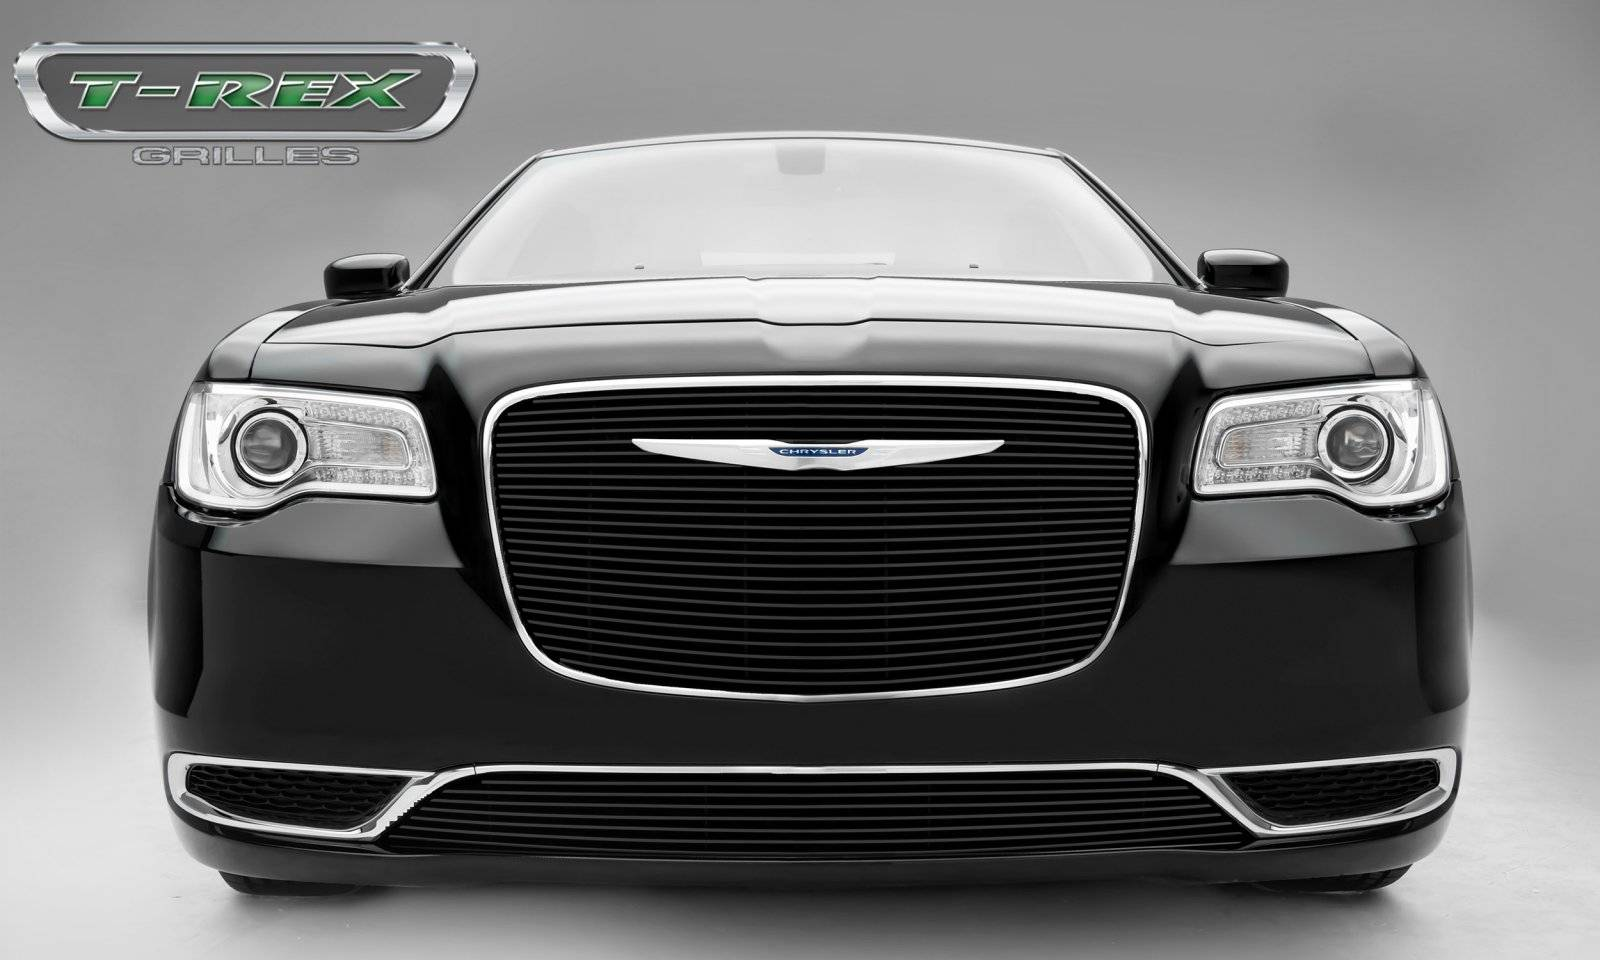 Chrysler 300 - Billet Series - Main Grille Overlay with Black Powder Coat Aluminum Bars - Pt # 21436B